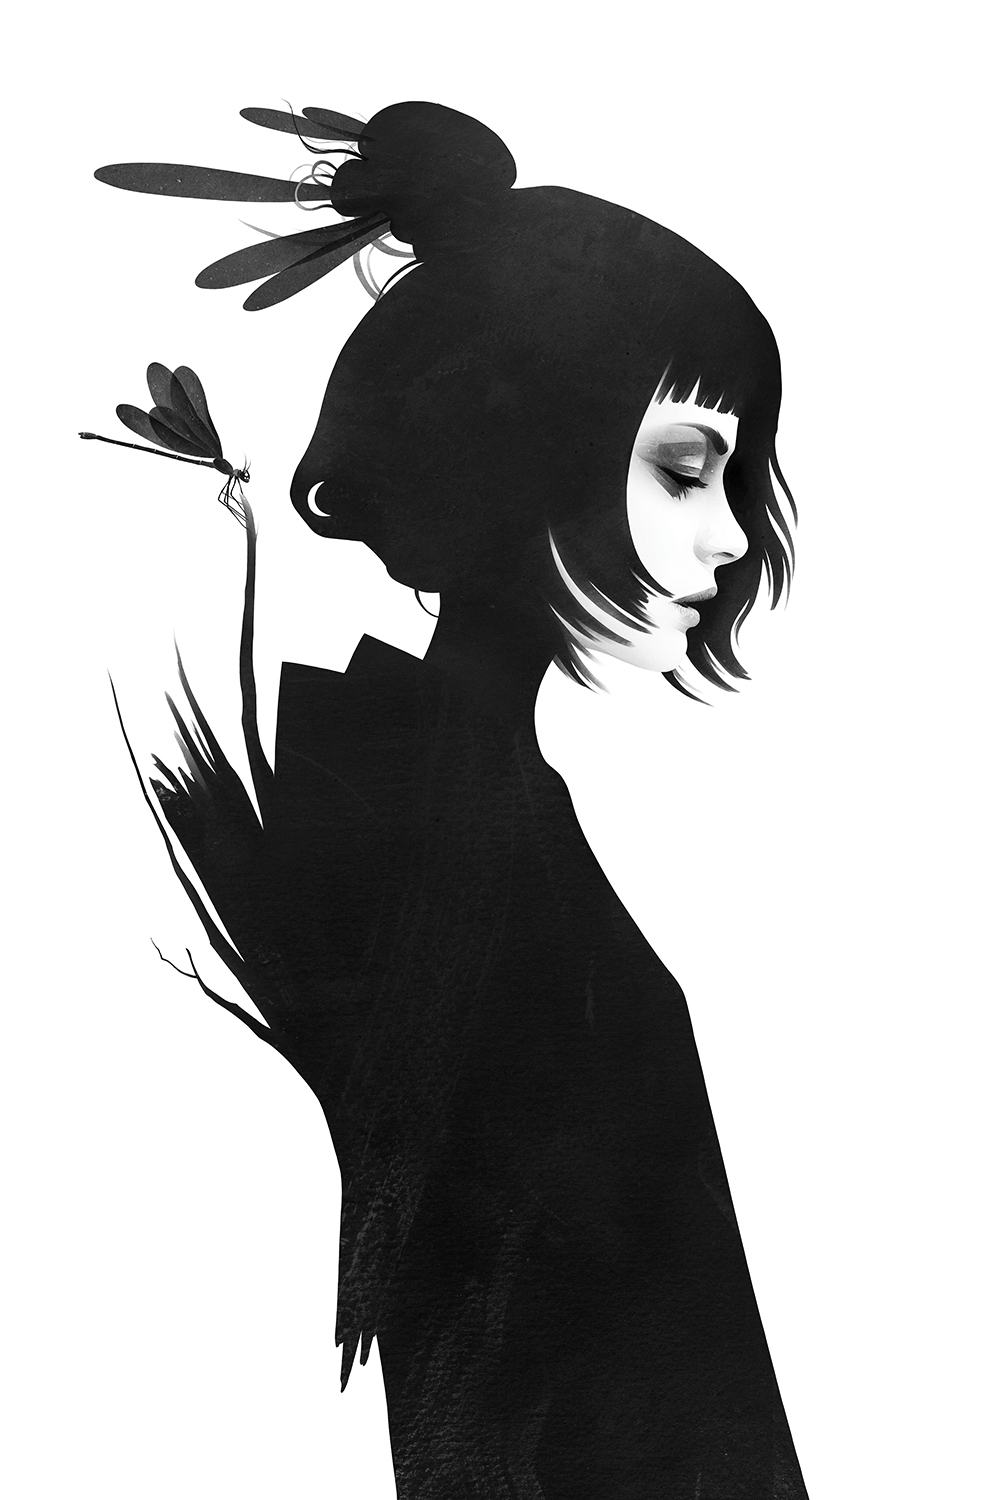 a woman shadowed in black with a dragonfly behind her